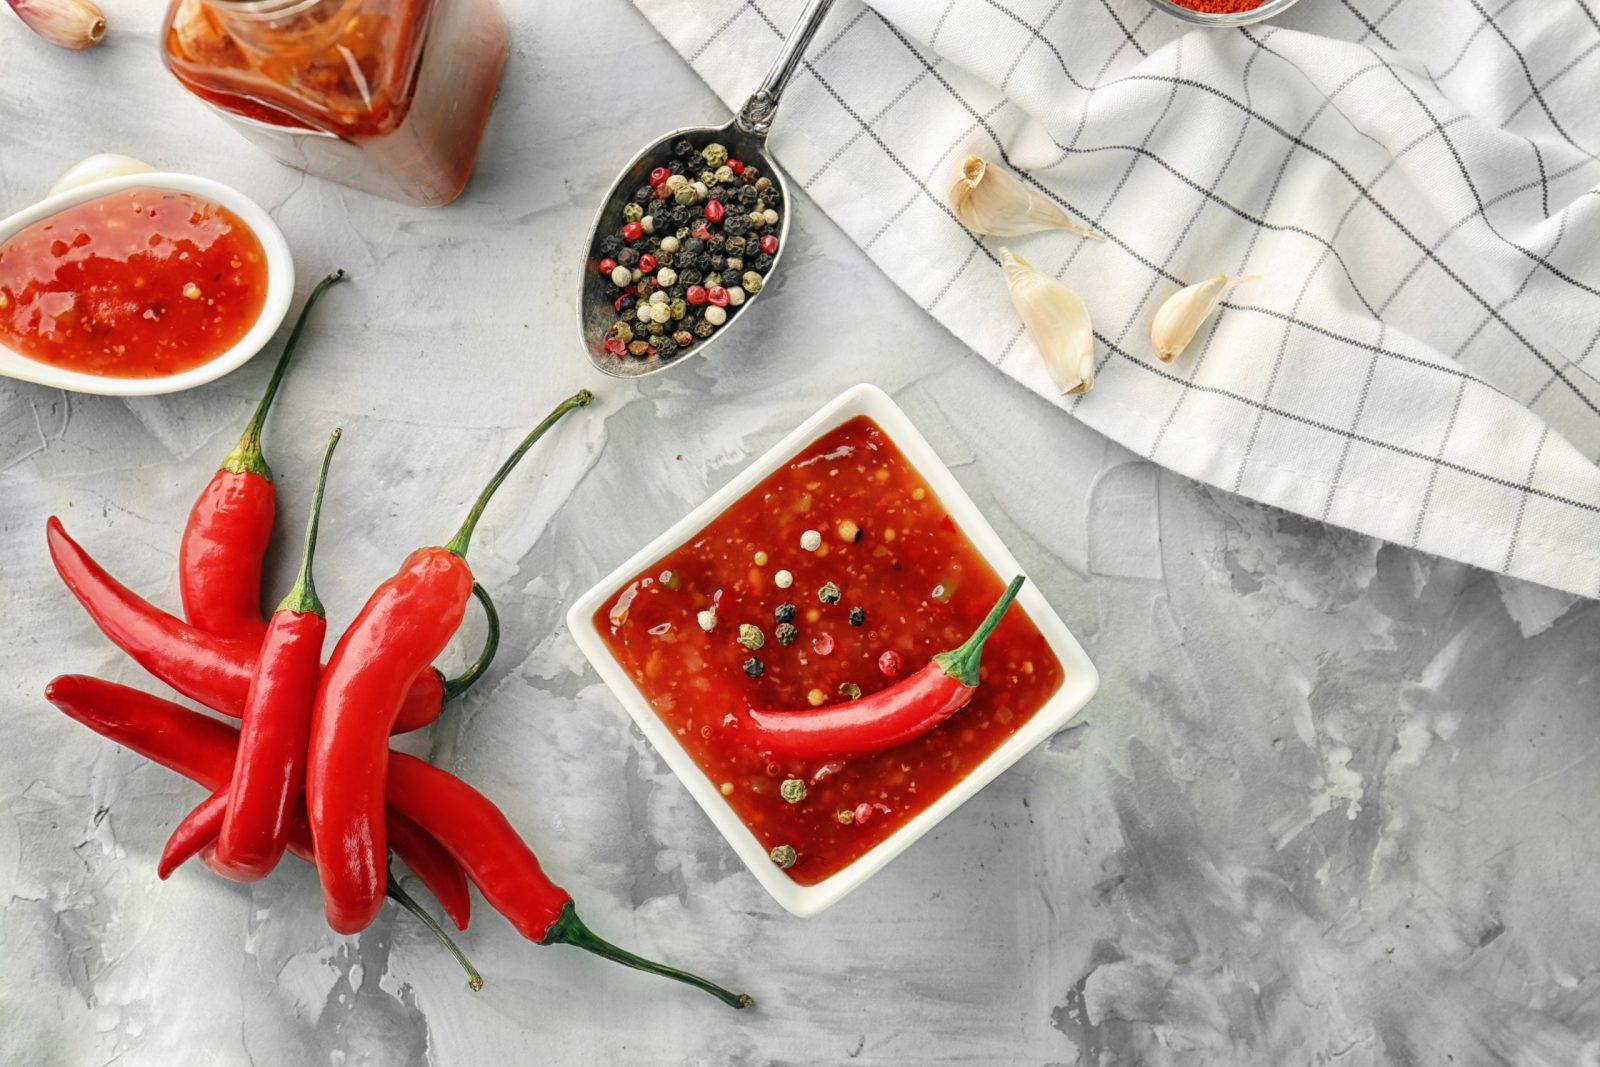 Steer Clear of Spicy Foods